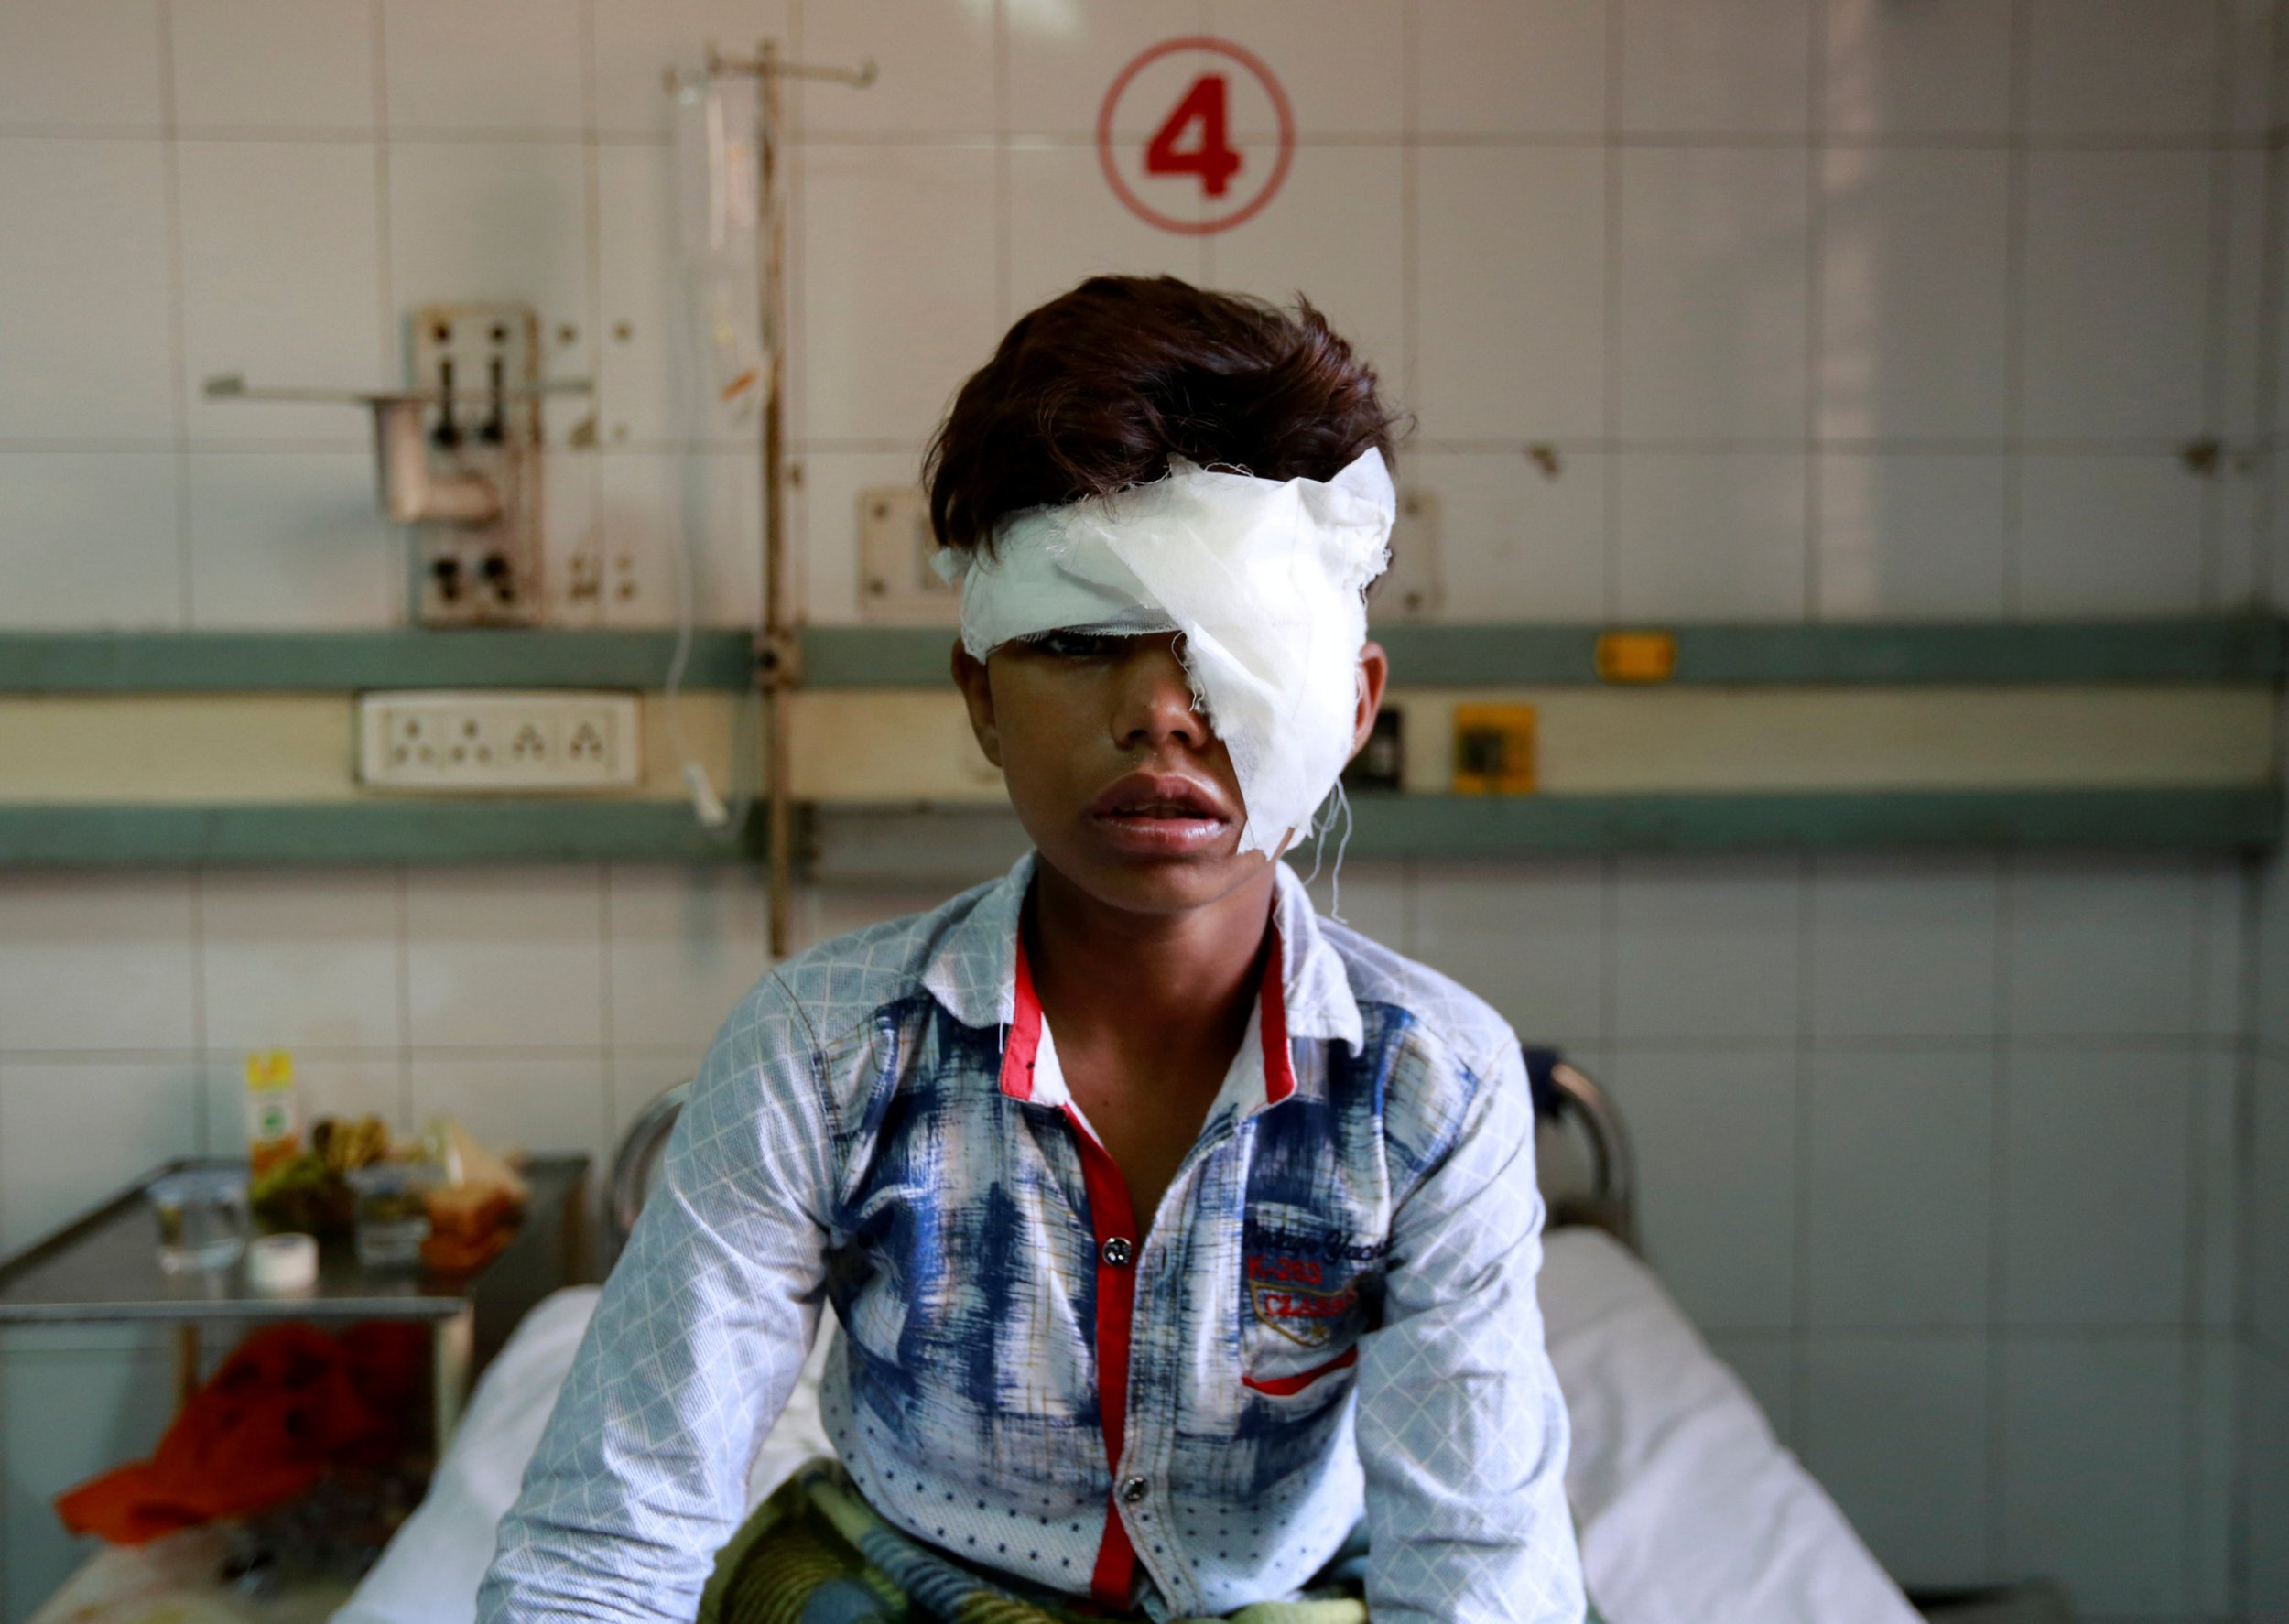 A boy who was was injured after a commuter train traveling at high speed ran through a crowd of people on the rail tracks on Friday, sits in a hospital bed in Amritsar, India, October 20, 2018. REUTERS/Adnan Abidi TPX IMAGES OF THE DAY